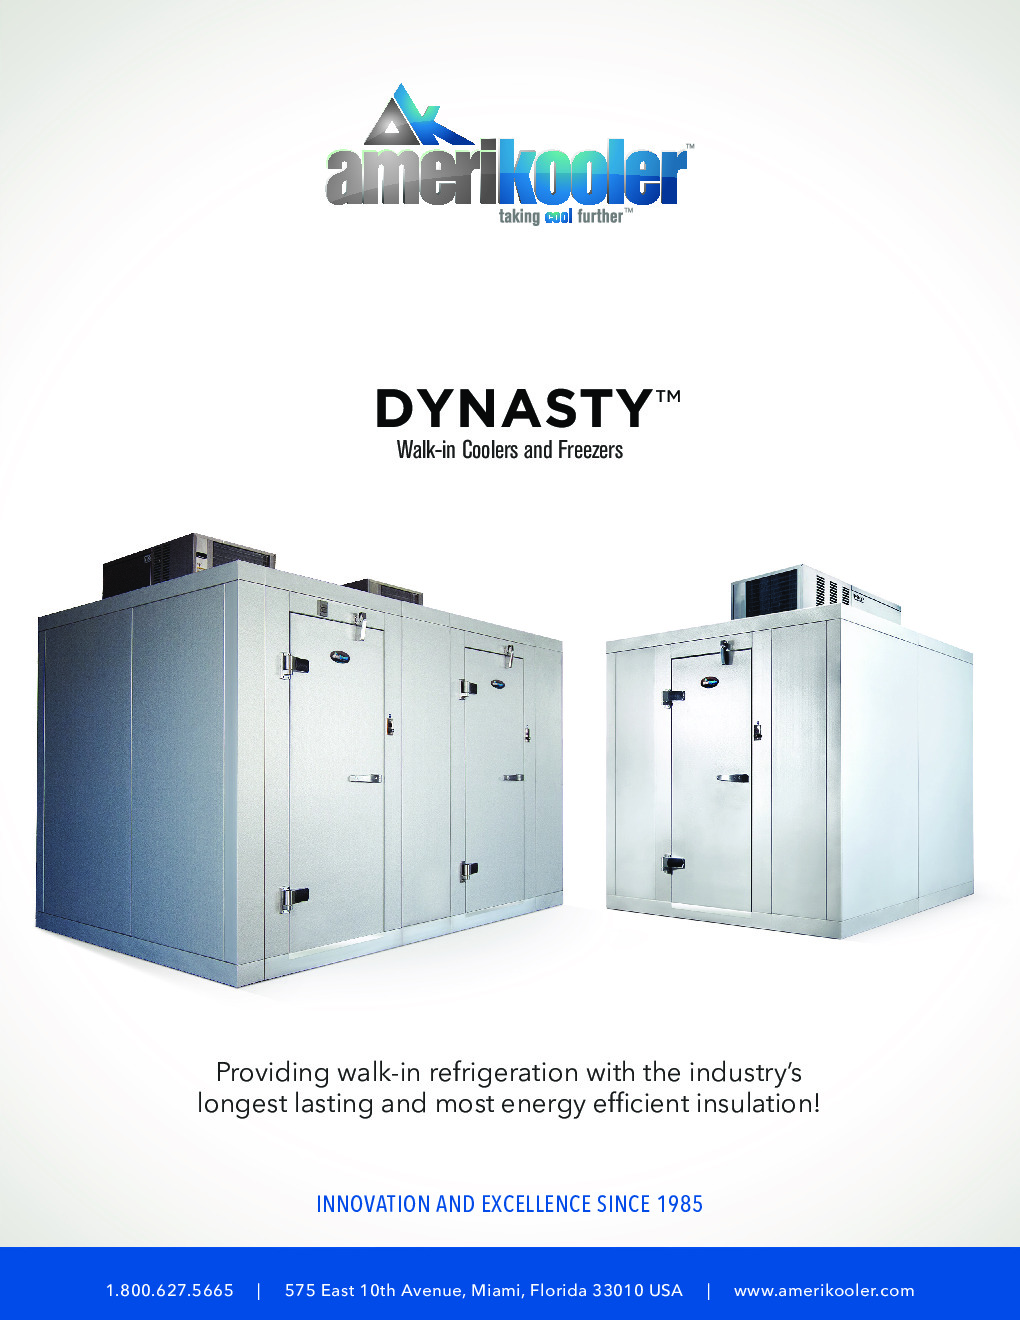 AmeriKooler DW101977N-9/10-SC 10' X 19' Walk-In Cooler, 10' L Cooler without Floor and 9' L Freezer, Self Contained